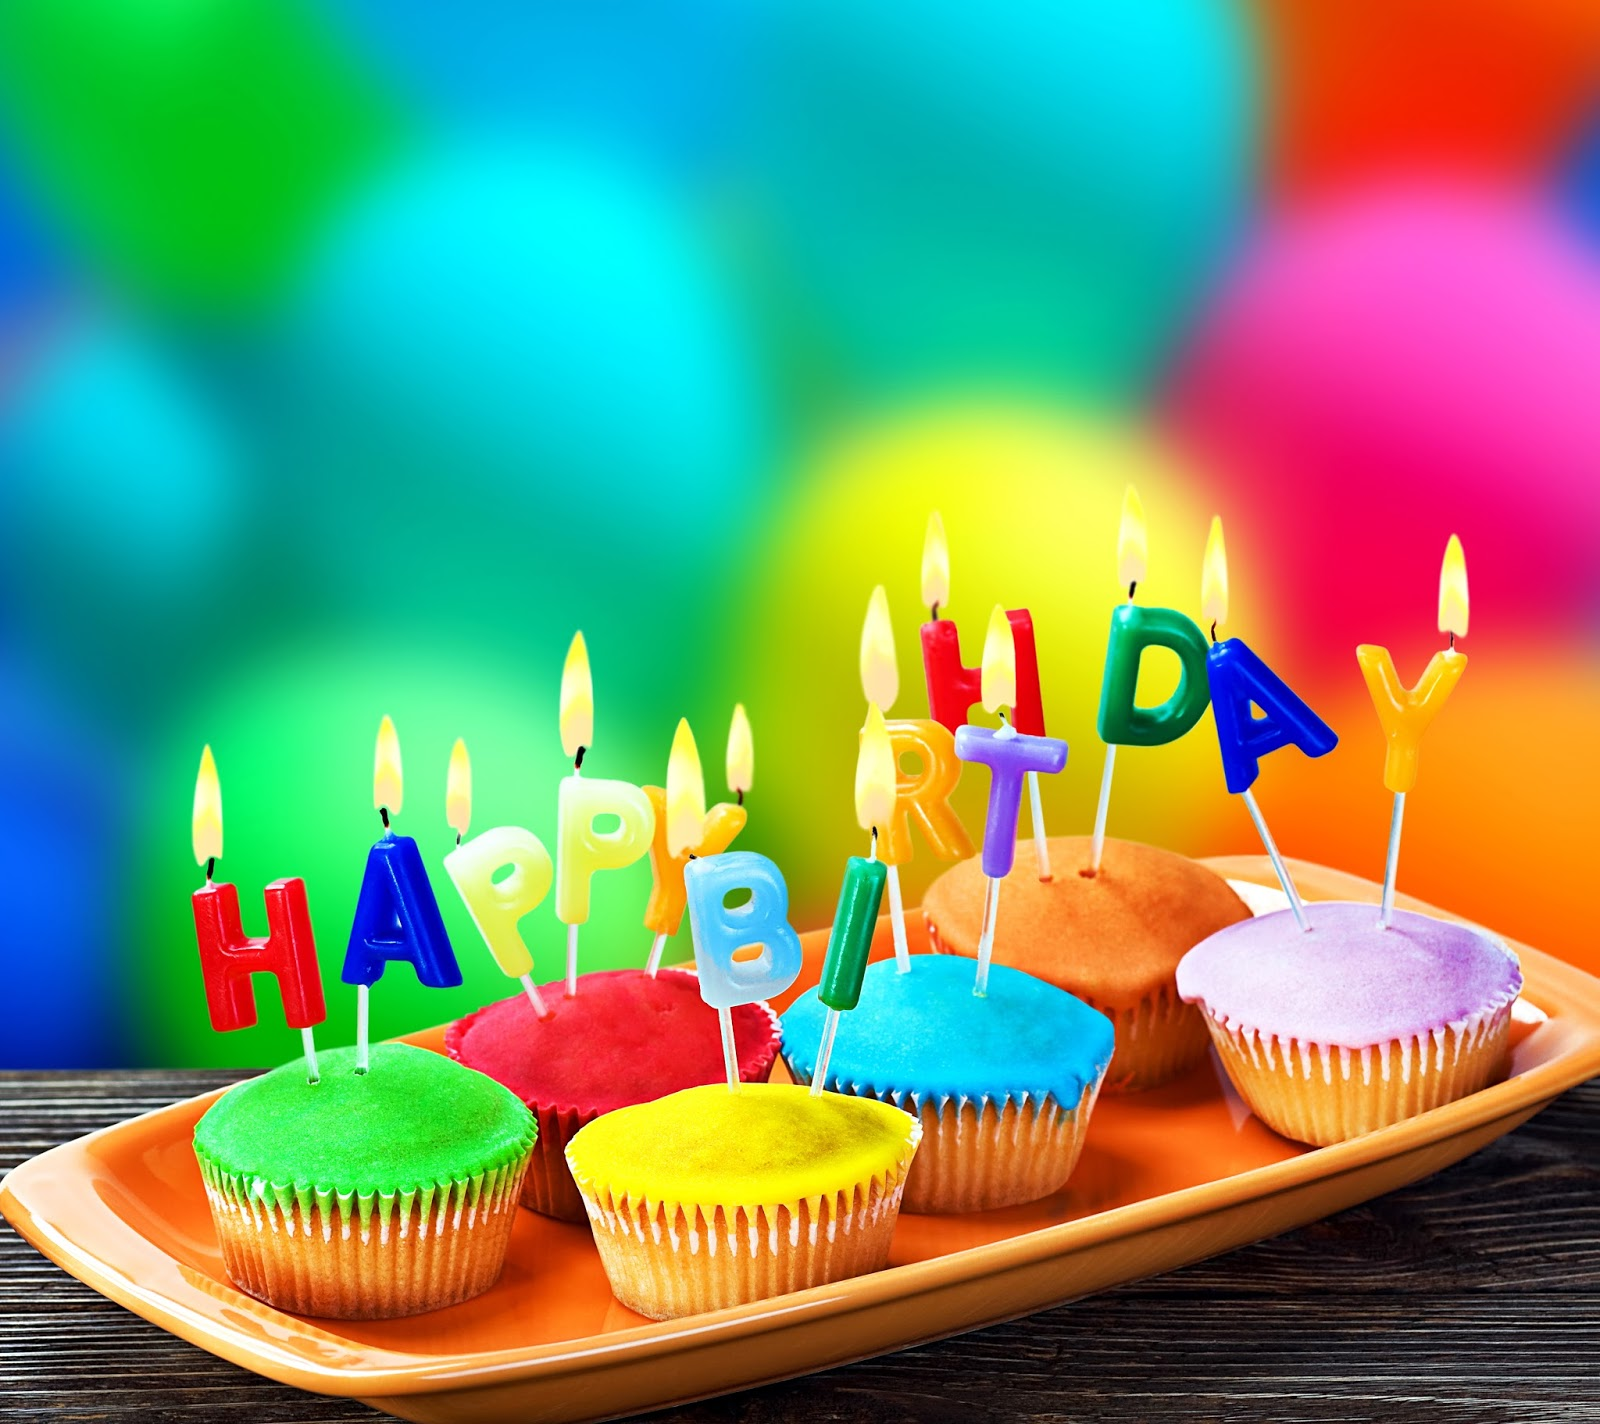 birthday wishes images hd ; 20-Awesome-Happy-Birthday-HD-Pictures-to-wish-your-Loved-Ones-3